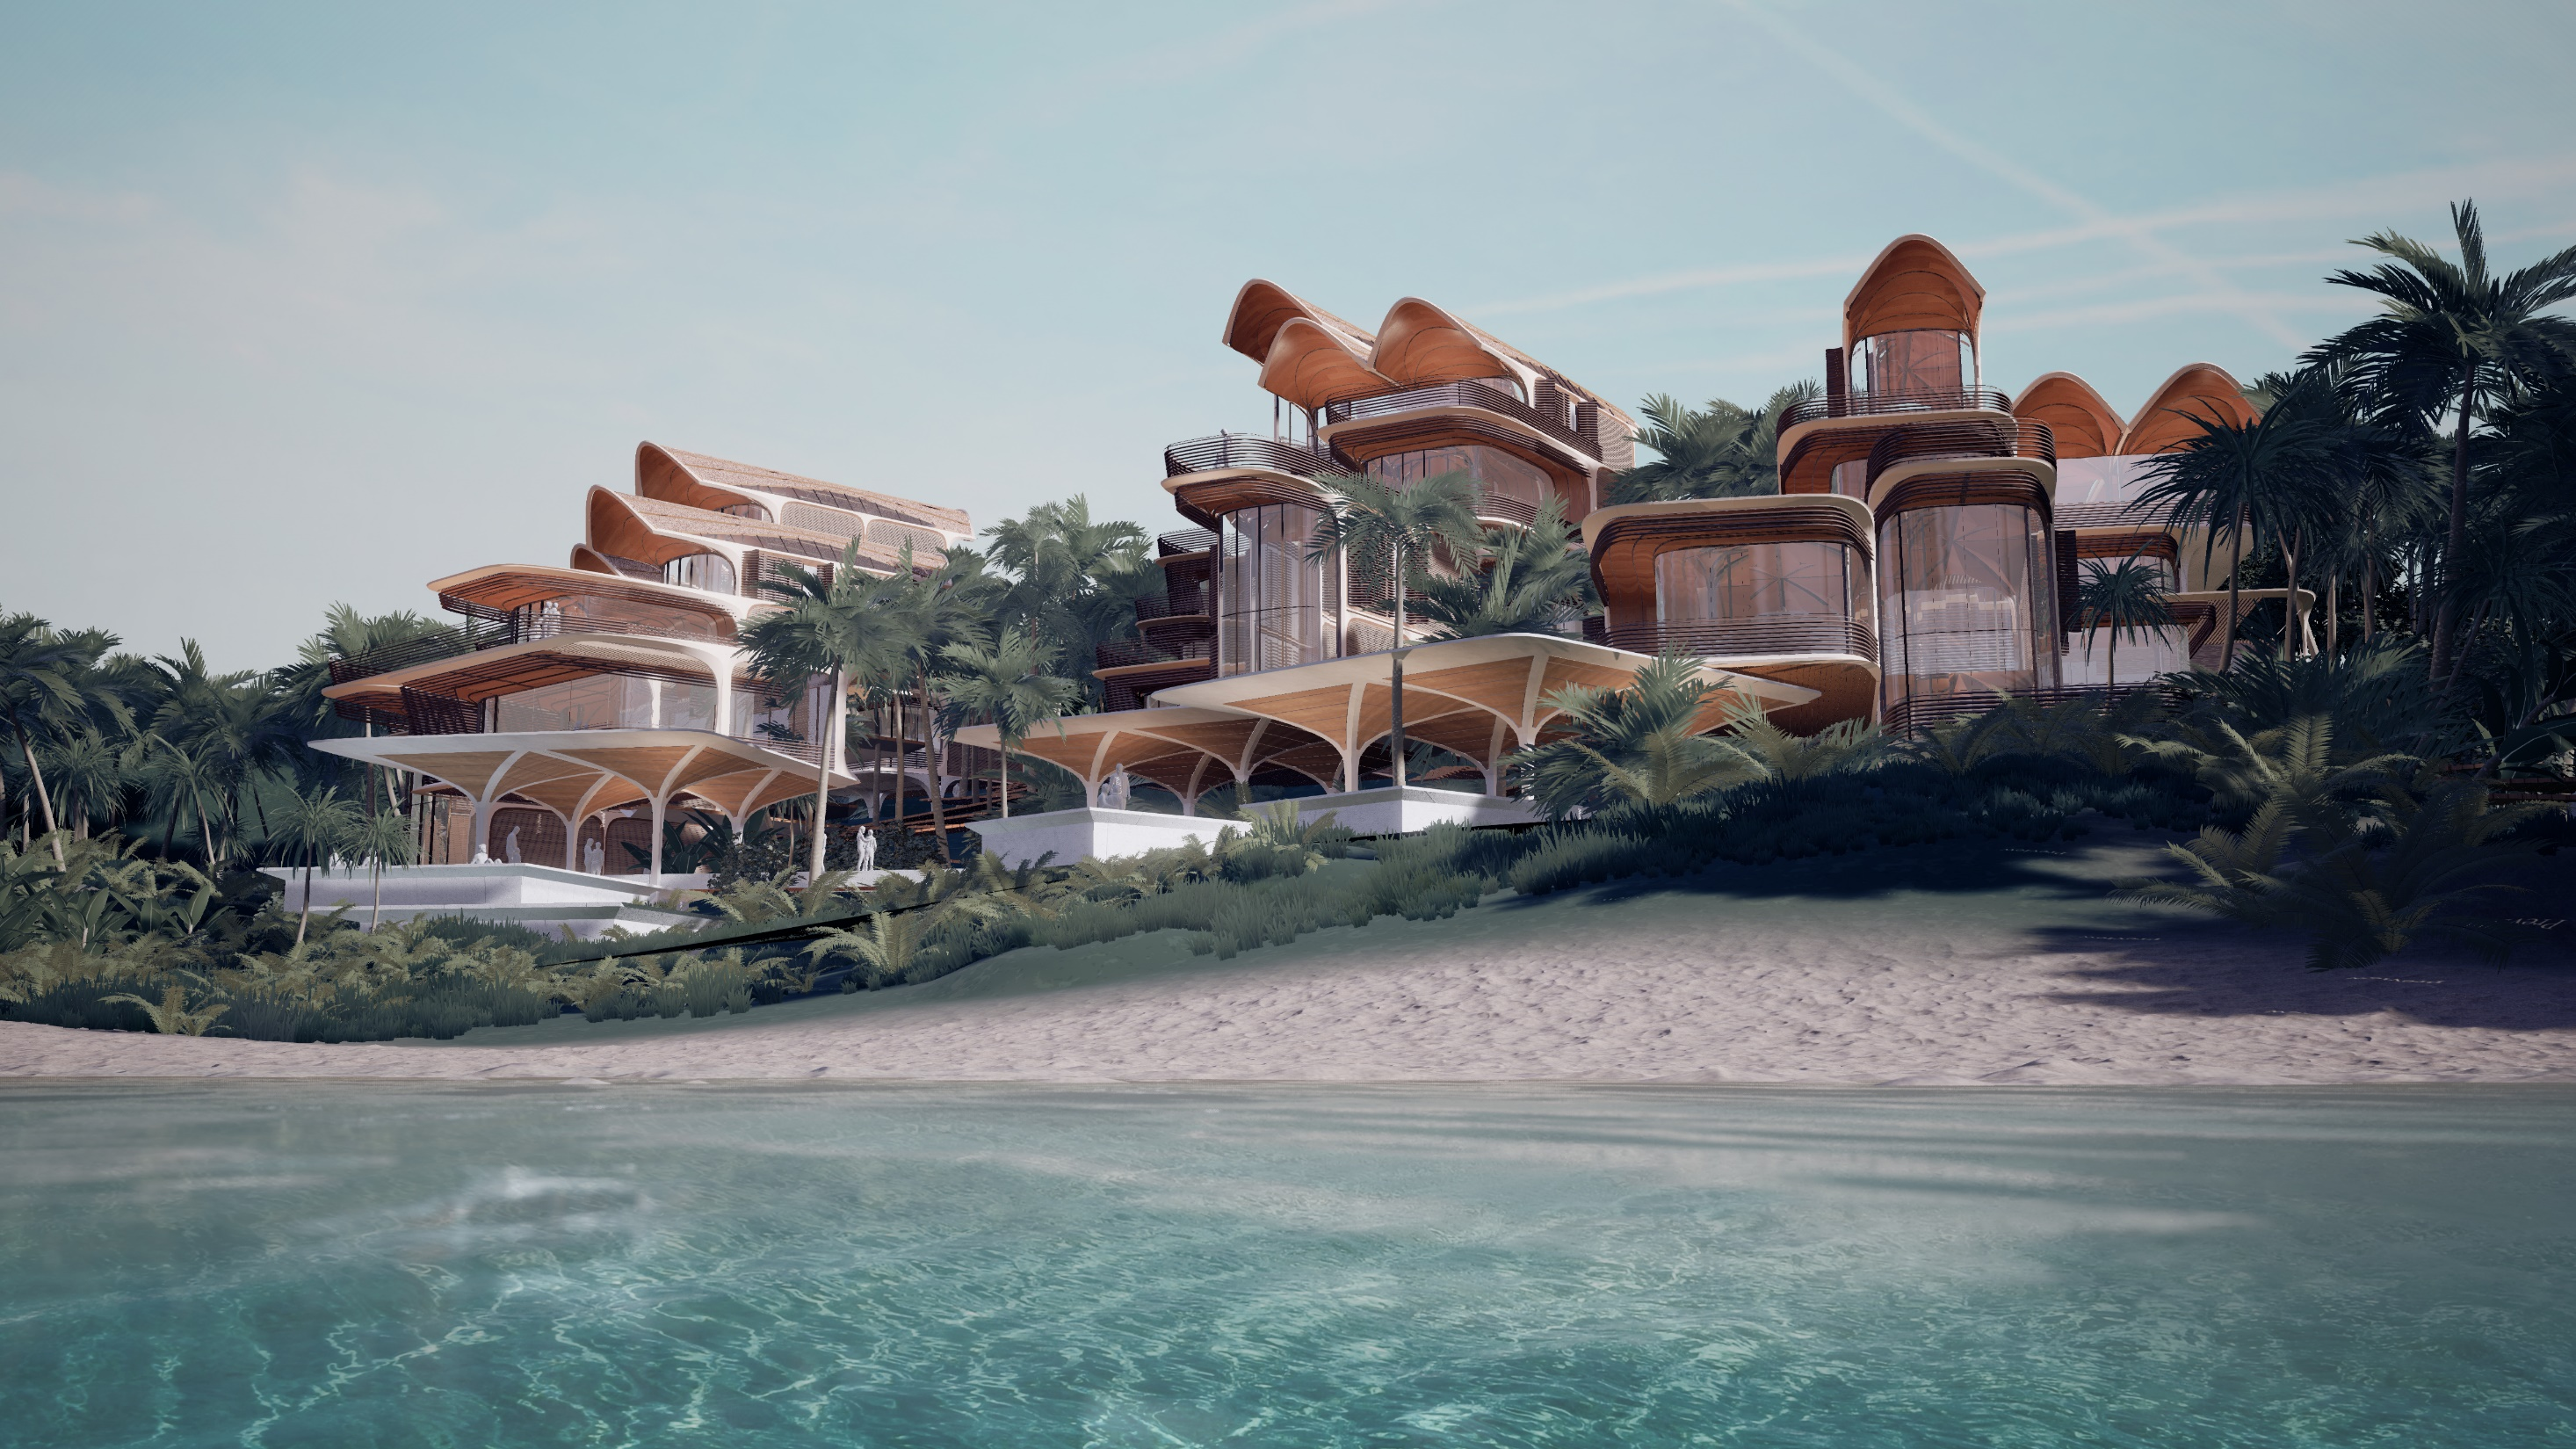 Roatán Próspera Residences will include sustainable design and technology, such as solar power